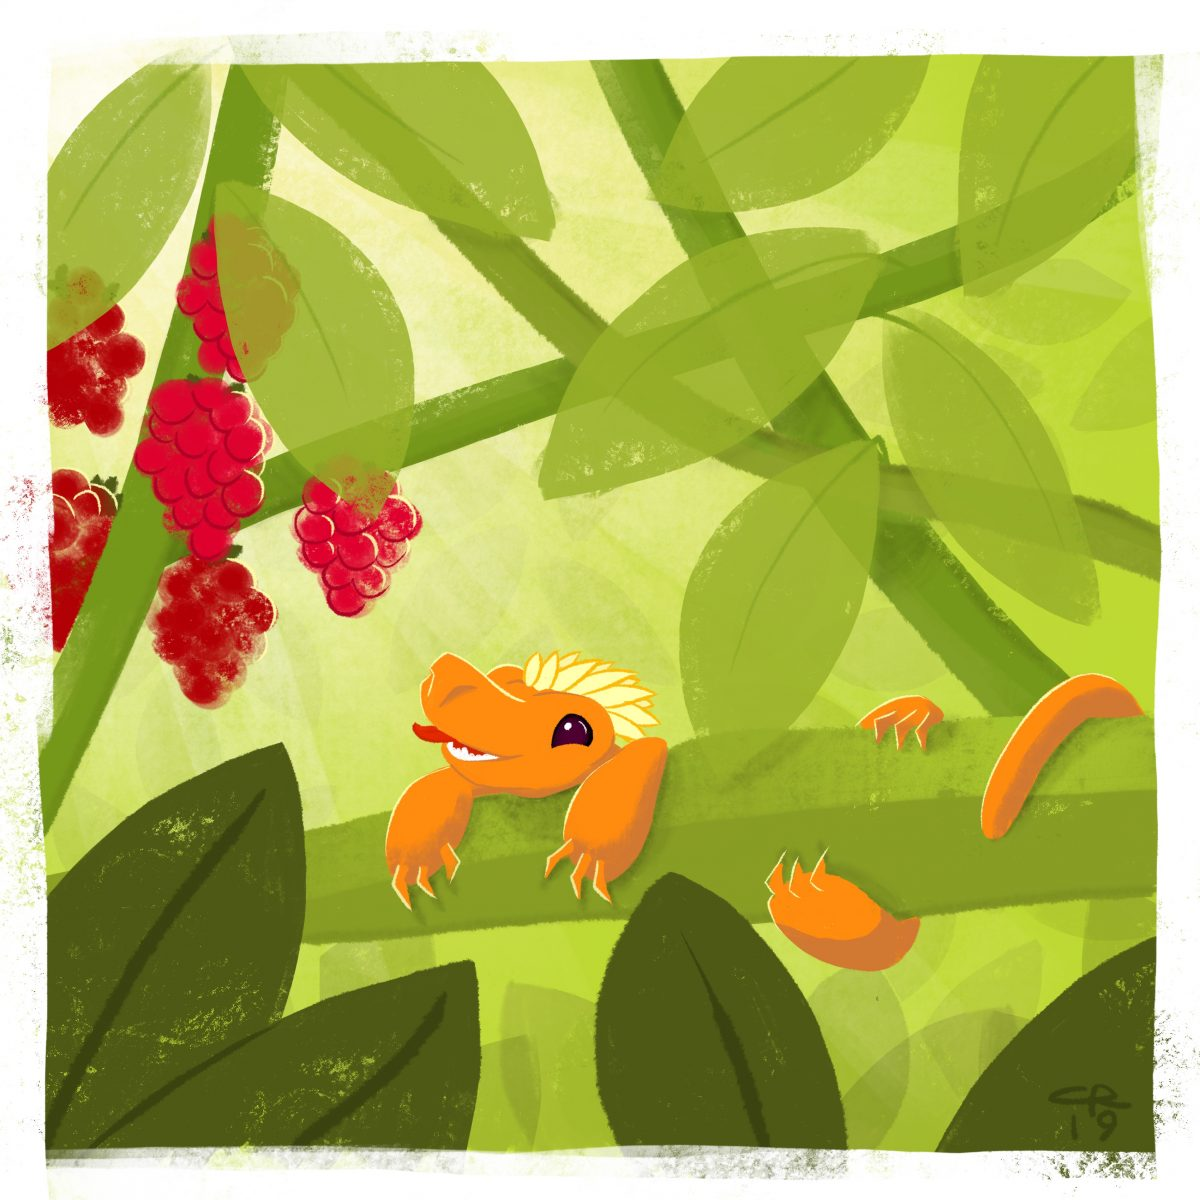 An image of a dragon straining purposefully to reach some delicious raspberries just beyond his reach